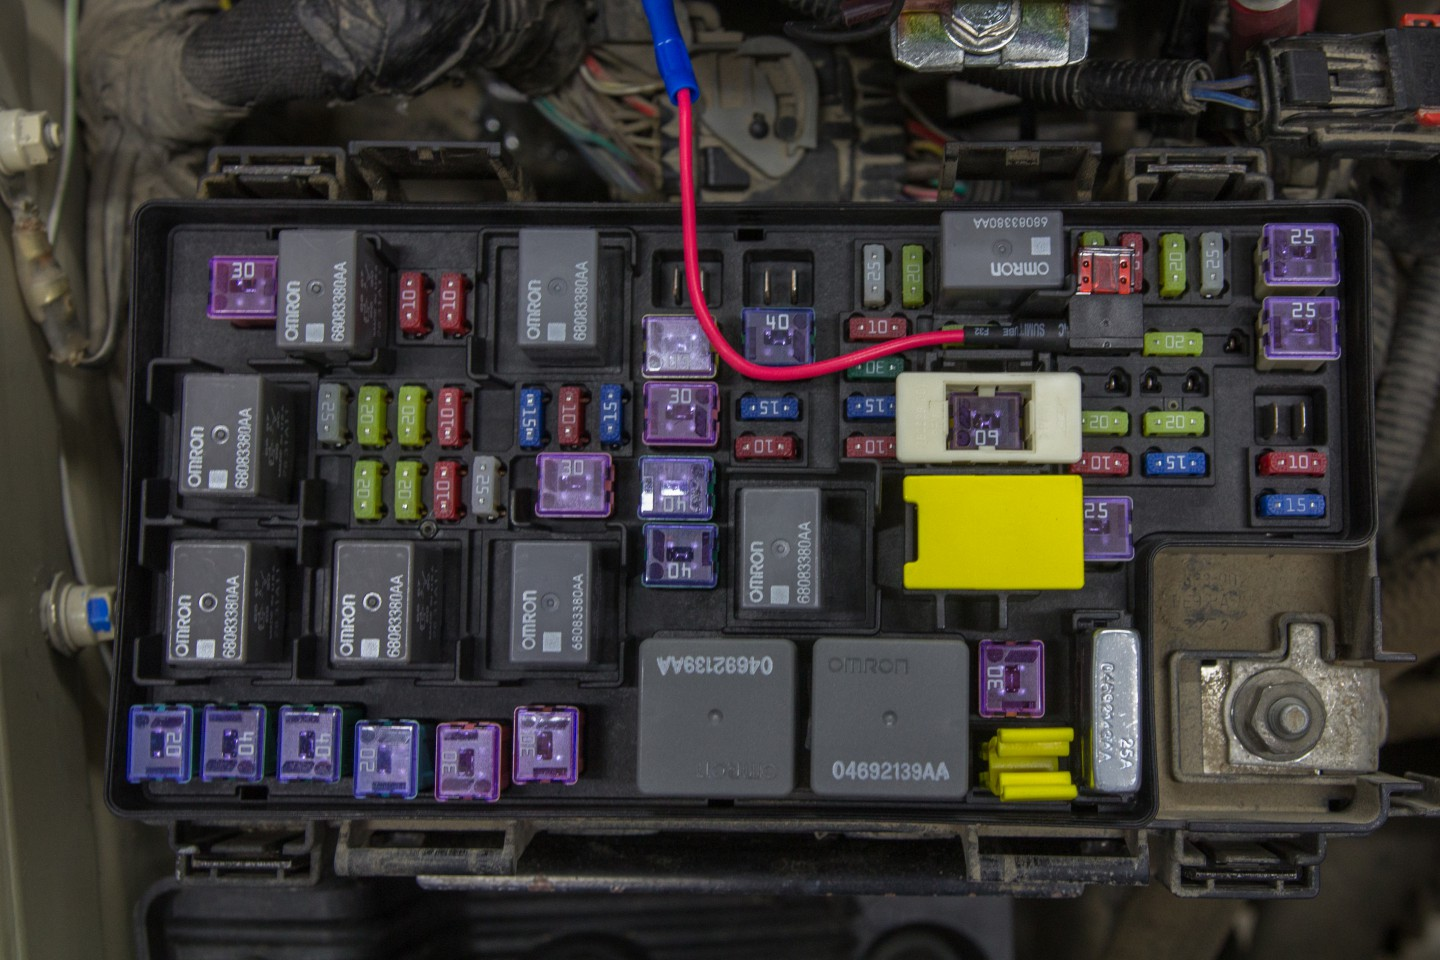 jk wrangler dual batteries trigger wire in fuse block 1440x960 2016 jeep jk fuse box diagram 1999 jeep wrangler fuse box diagram Fuse Box Diagram at gsmx.co